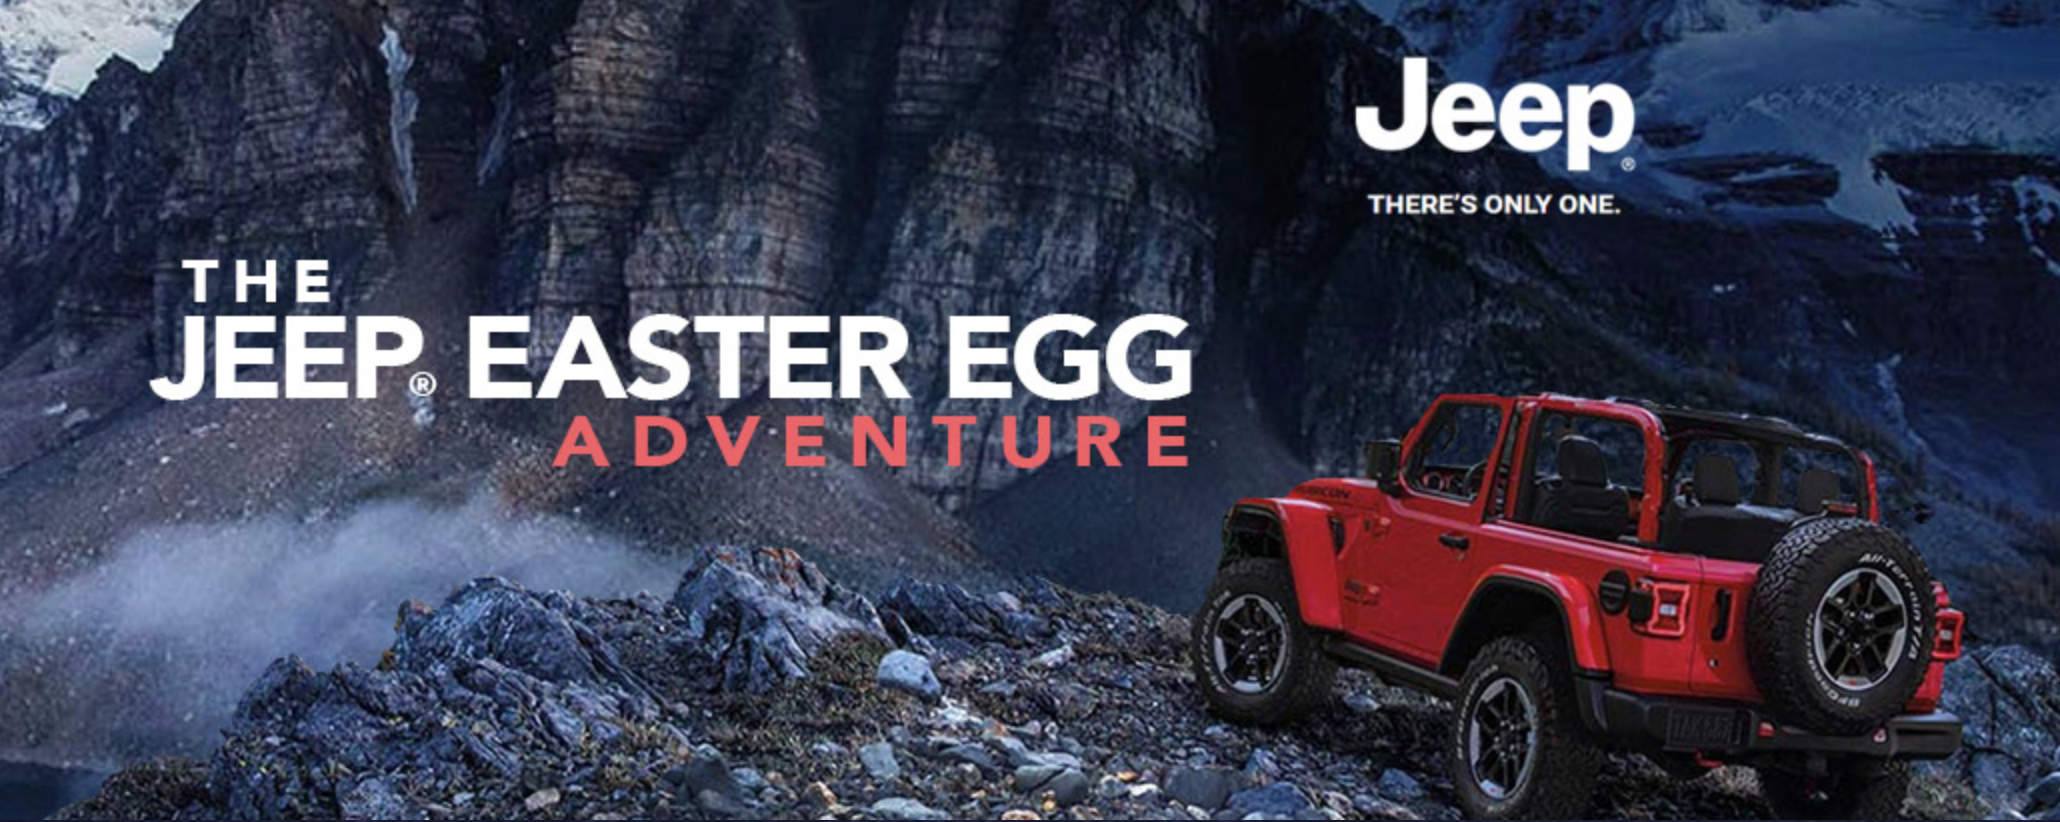 Jeep Easter Egg Adventure Home Of The Jeep Diehl Automotive Blog